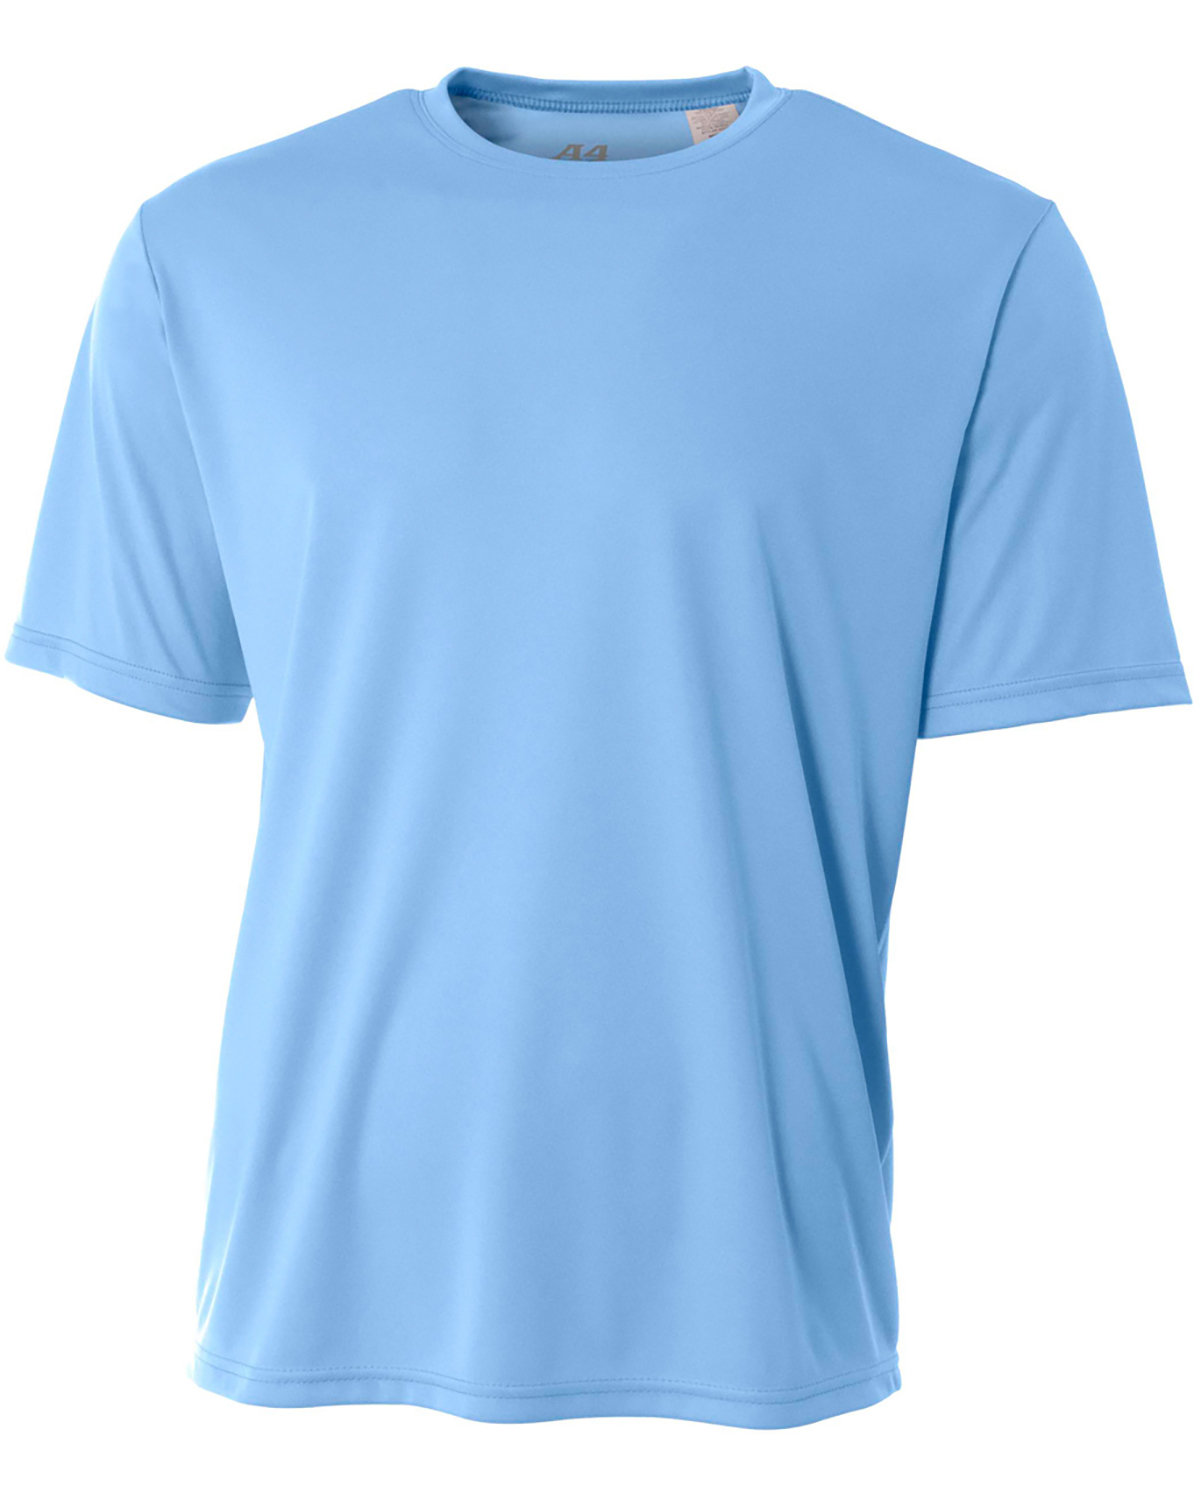 A4 Youth Cooling Performance T-Shirt LIGHT BLUE